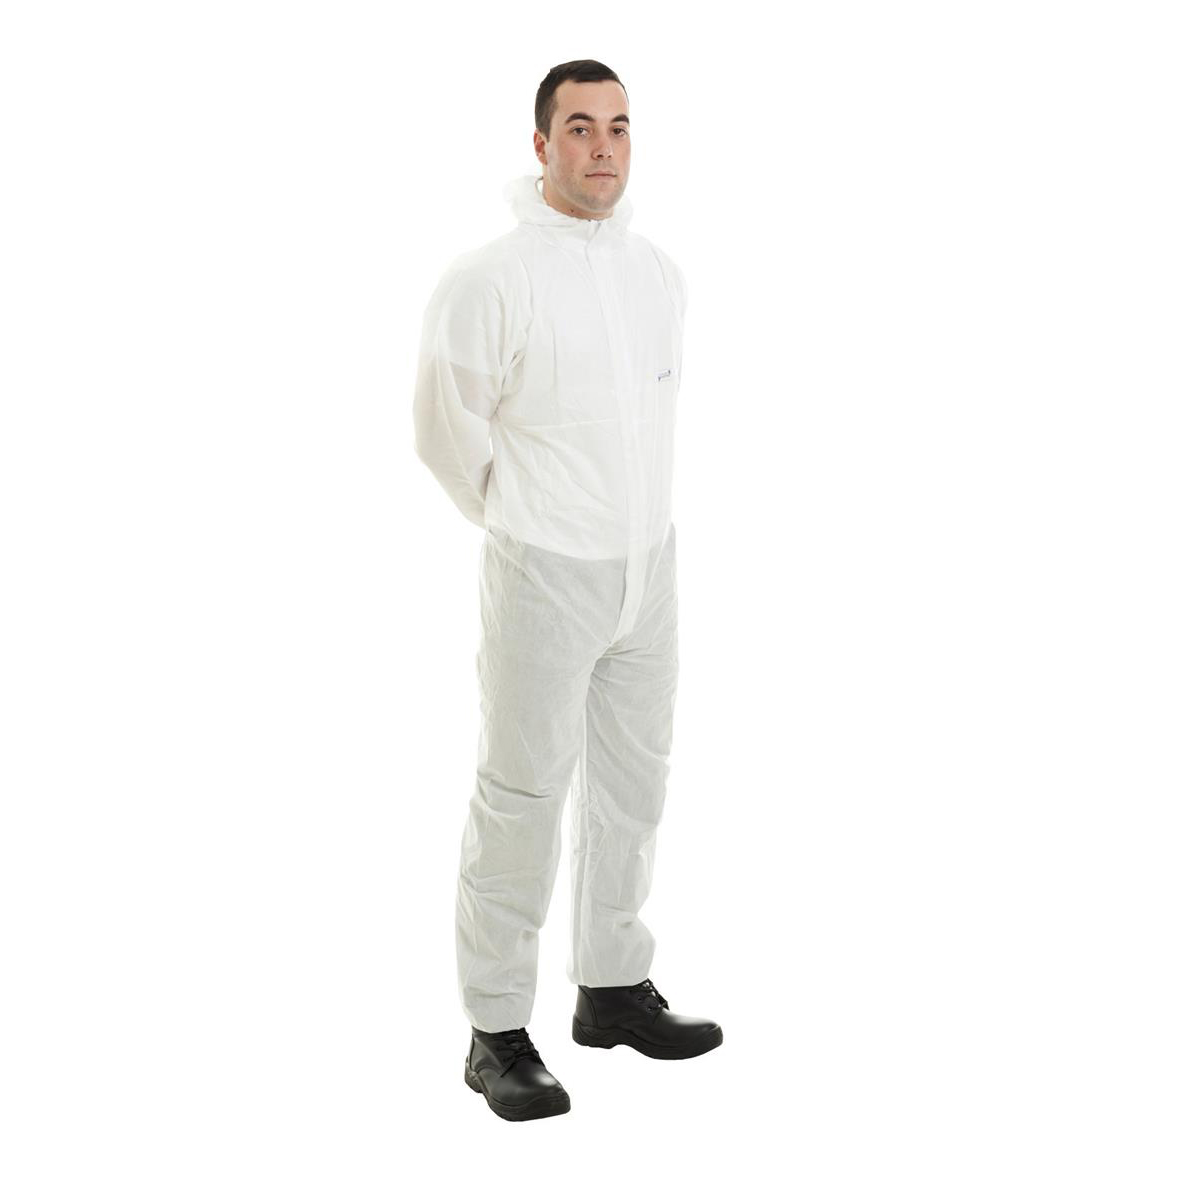 Supertouch Supertex SMS Coverall Type 5/6 Protection Medium White Ref 17602 *Approx 3 Day Leadtime*